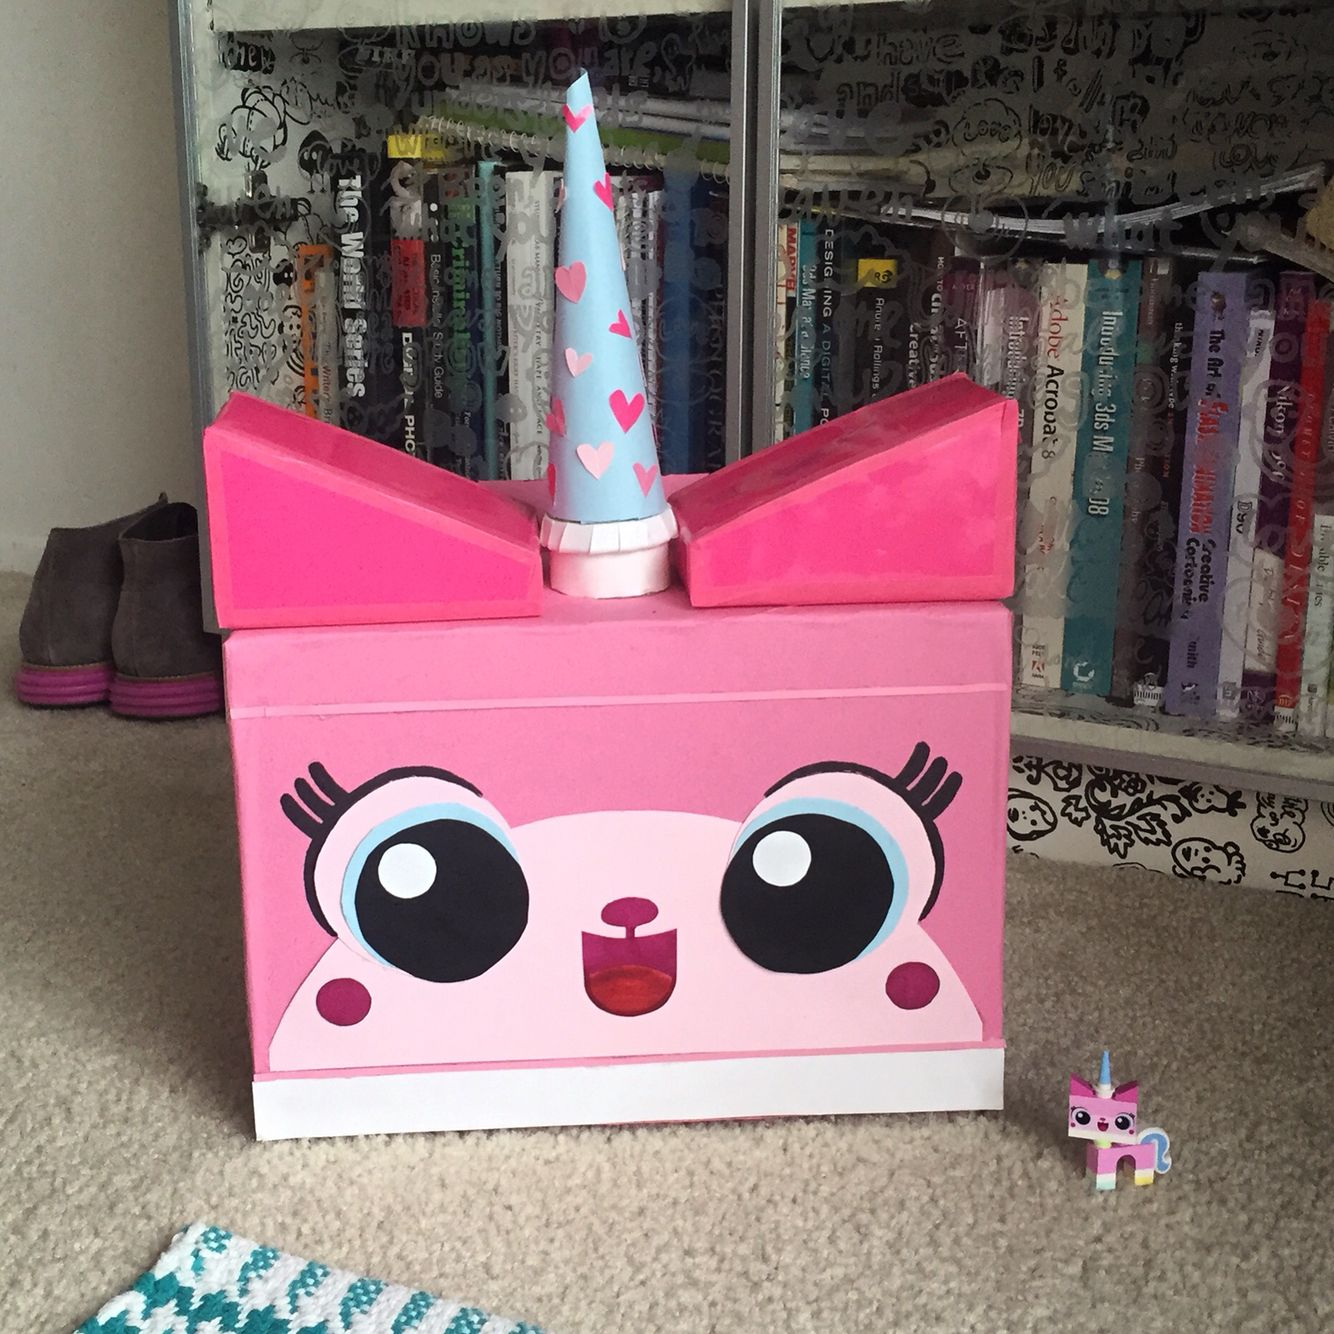 Lego Unikitty Valentine S Box Made From A Costco Sized